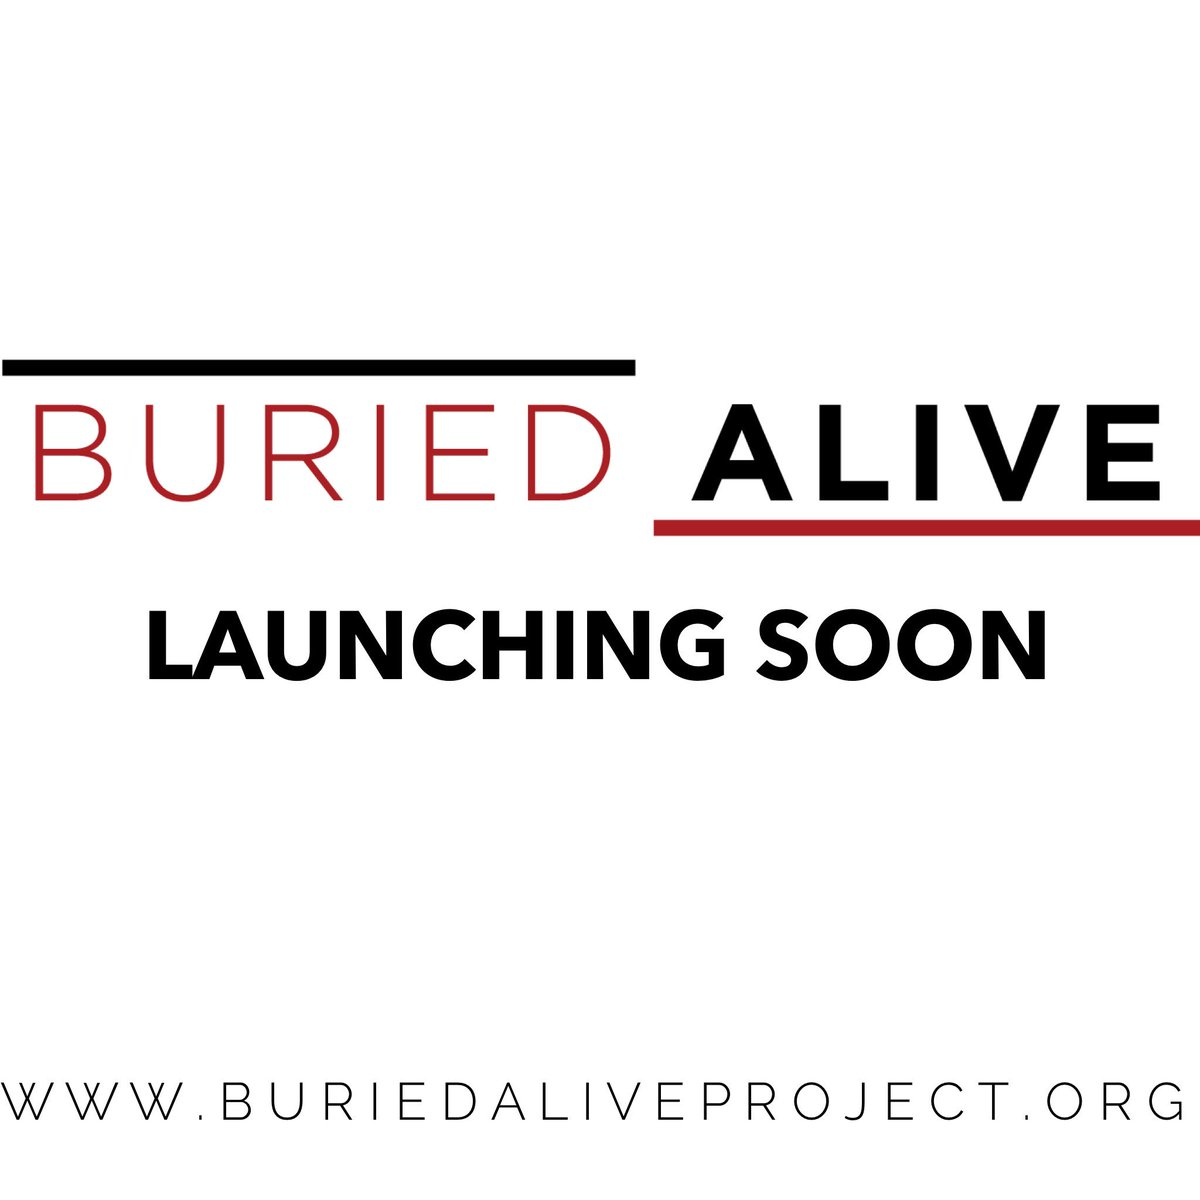 Buried Alive Project on Twitter: